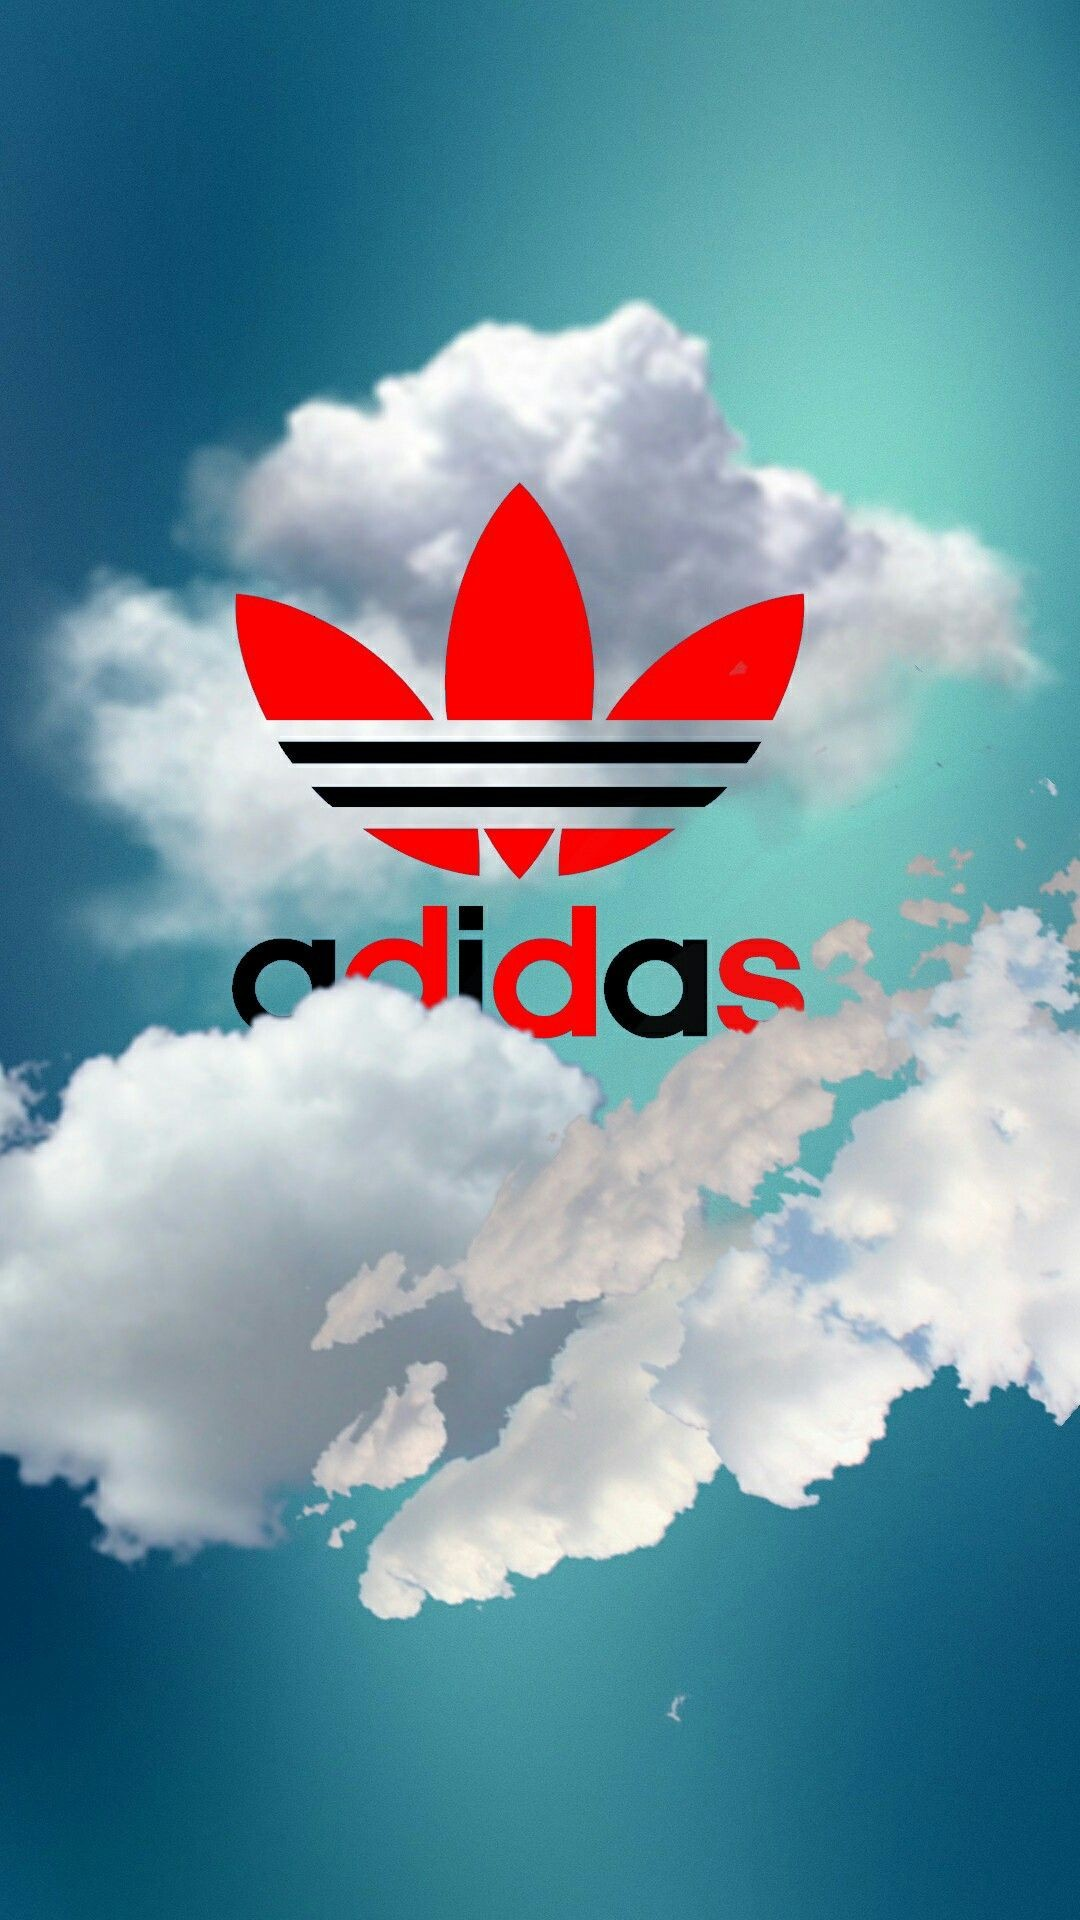 Res: 1080x1920, Iphone 6, Nike, Logo, Phone Wallpapers, Searching, Chicago Bulls, Adidas  Originals, Sportswear, Animation